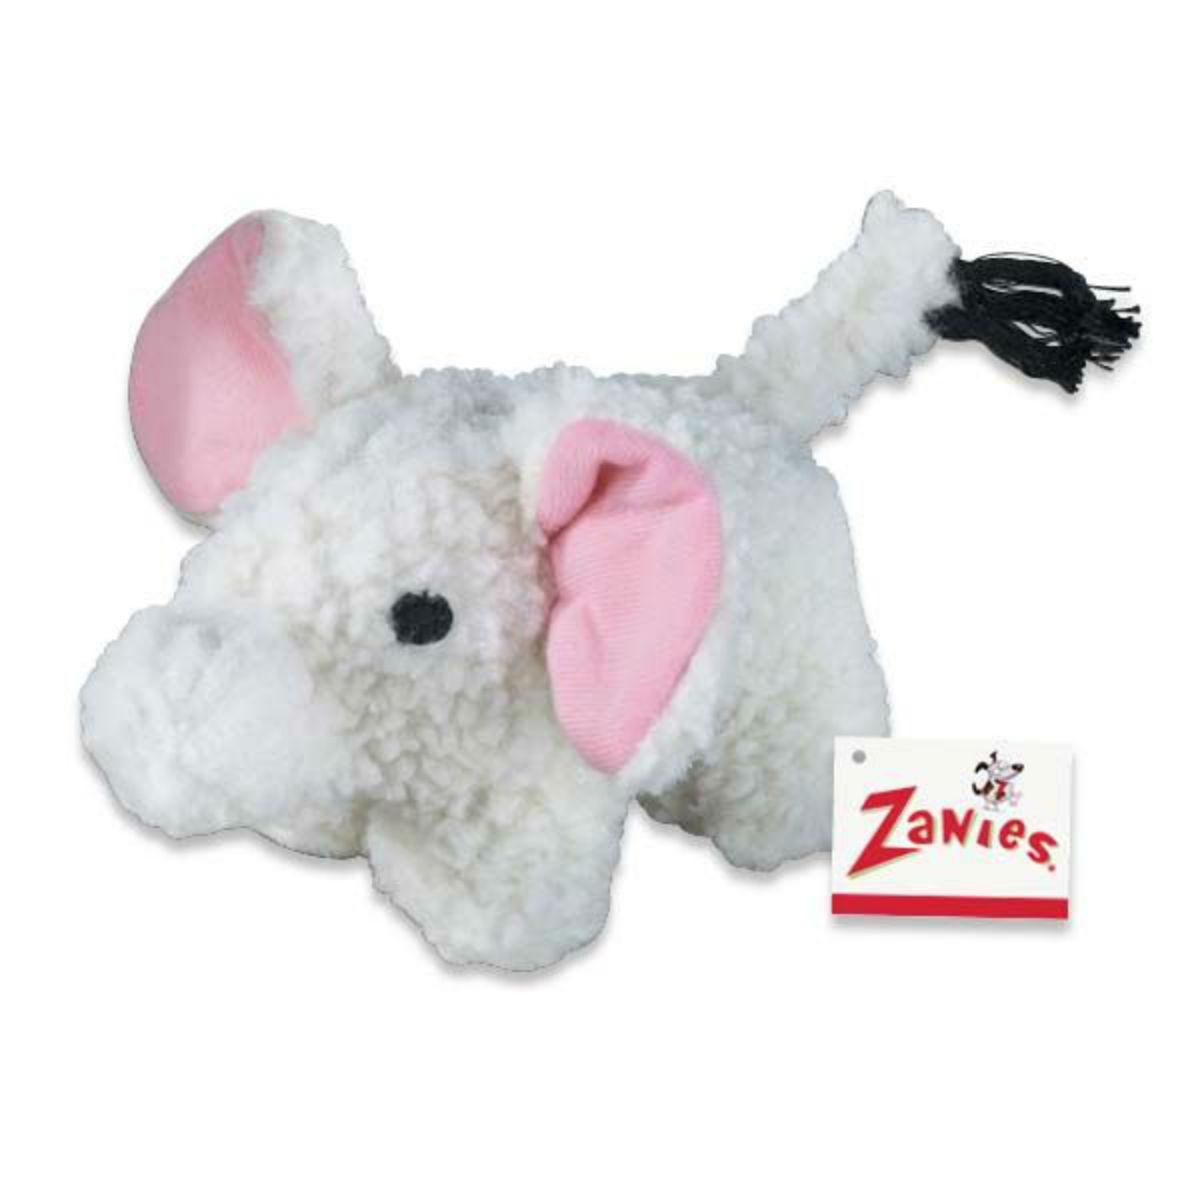 Zanies Fleecy Friends Dog Toy - Elephant